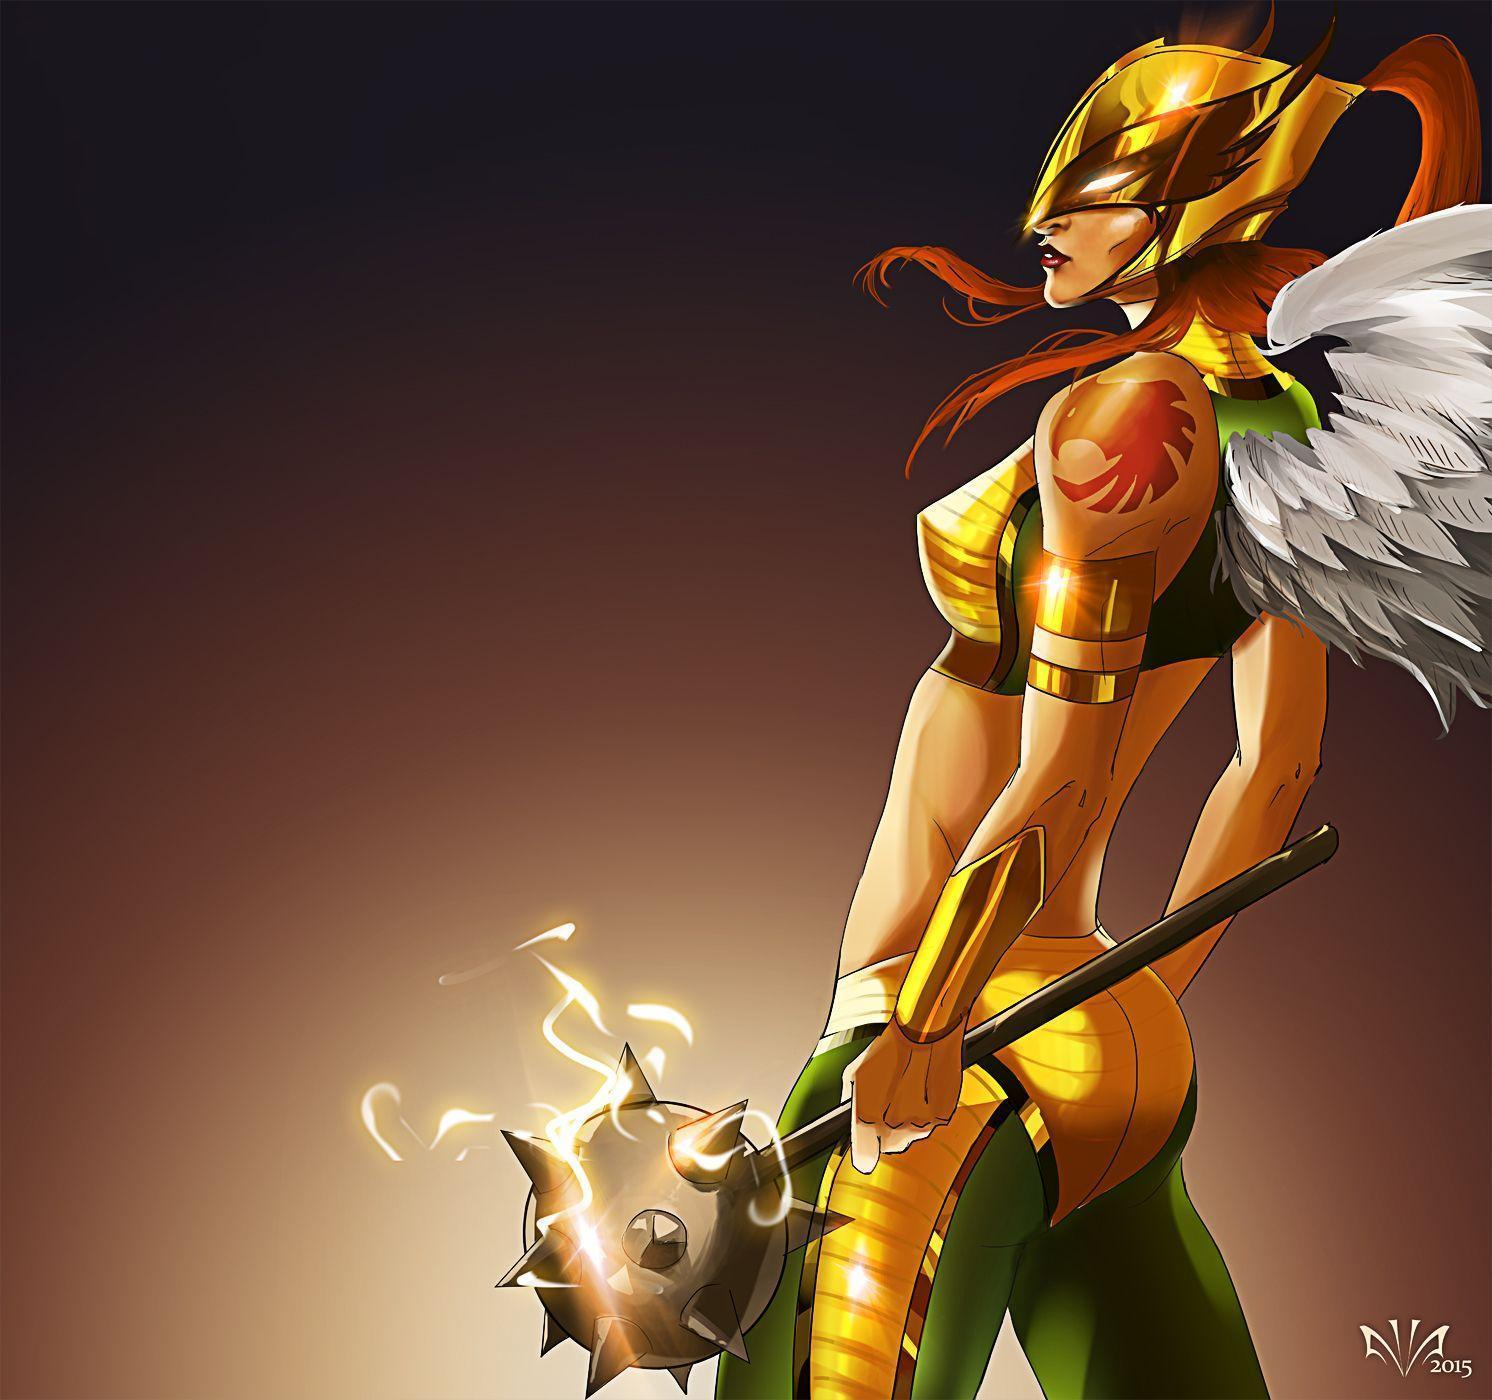 Hawkgirl wallpapers, Comics, HQ Hawkgirl pictures | 4K Wallpapers